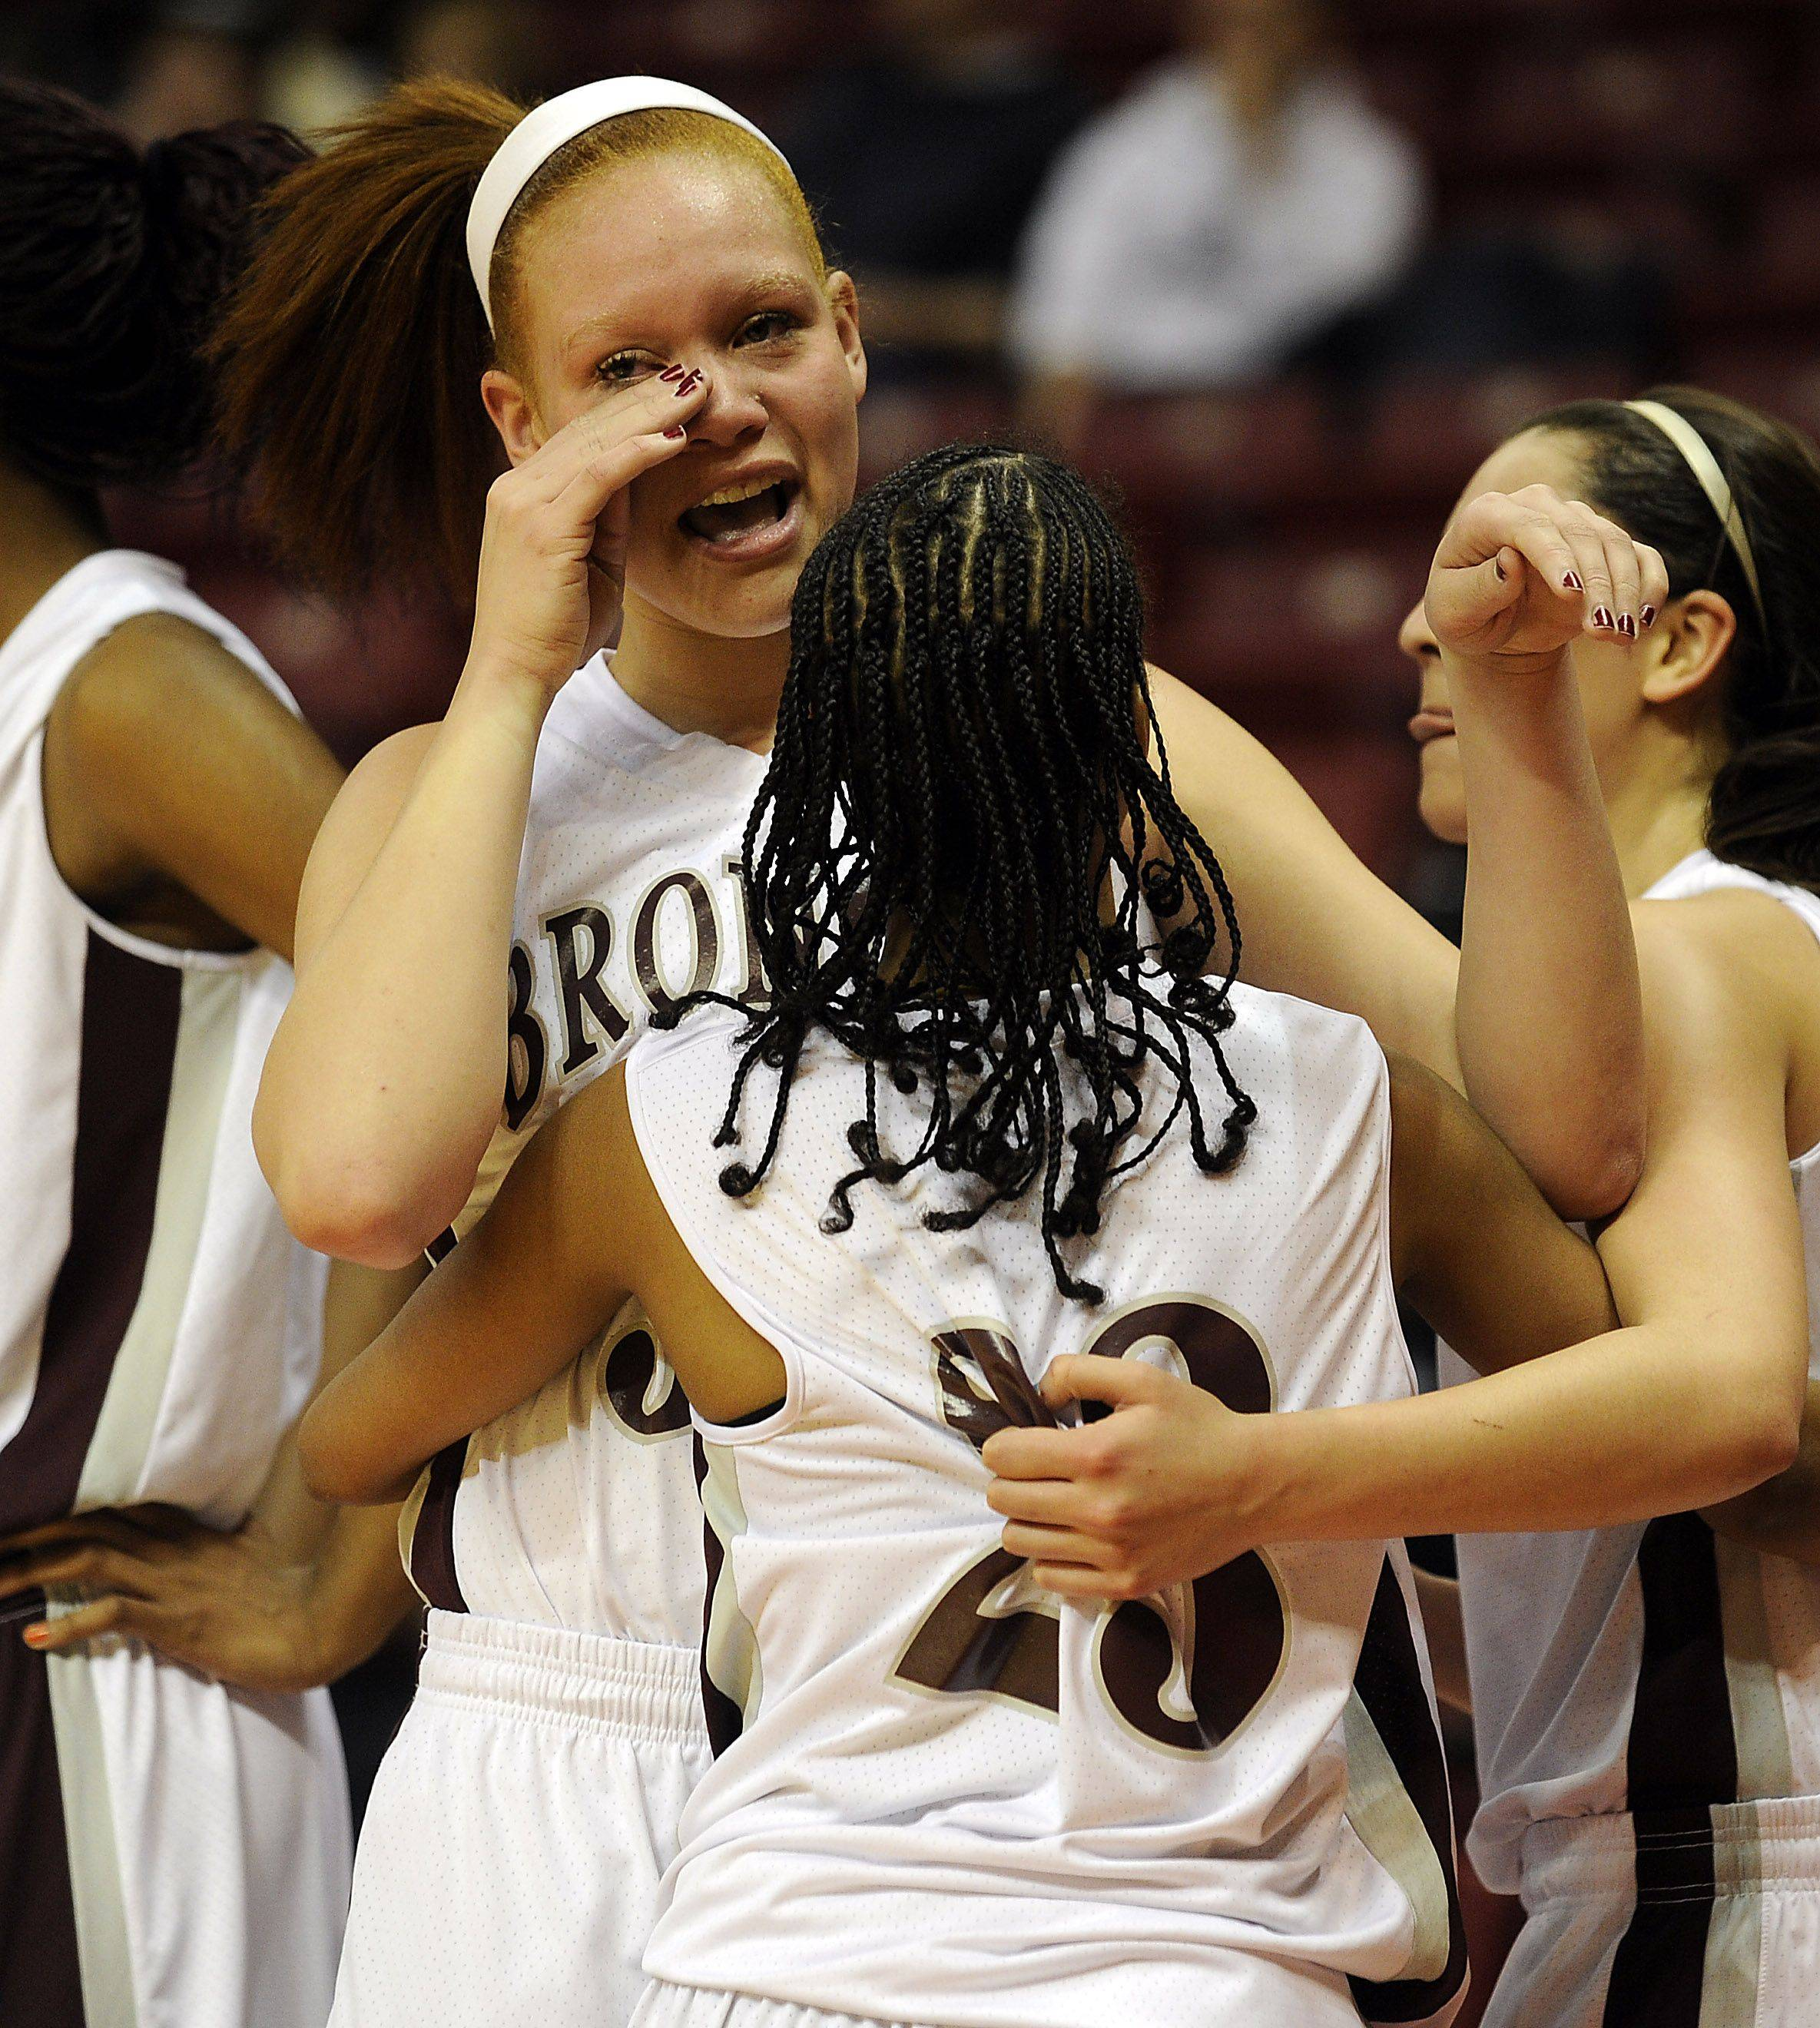 Montini's Whitney Adams cries tears of joy as she hugs her teammate Kiki Wilson after their victory over Hillcrest in the girls Class 3A basketball action at Redbird Arena on Saturday.